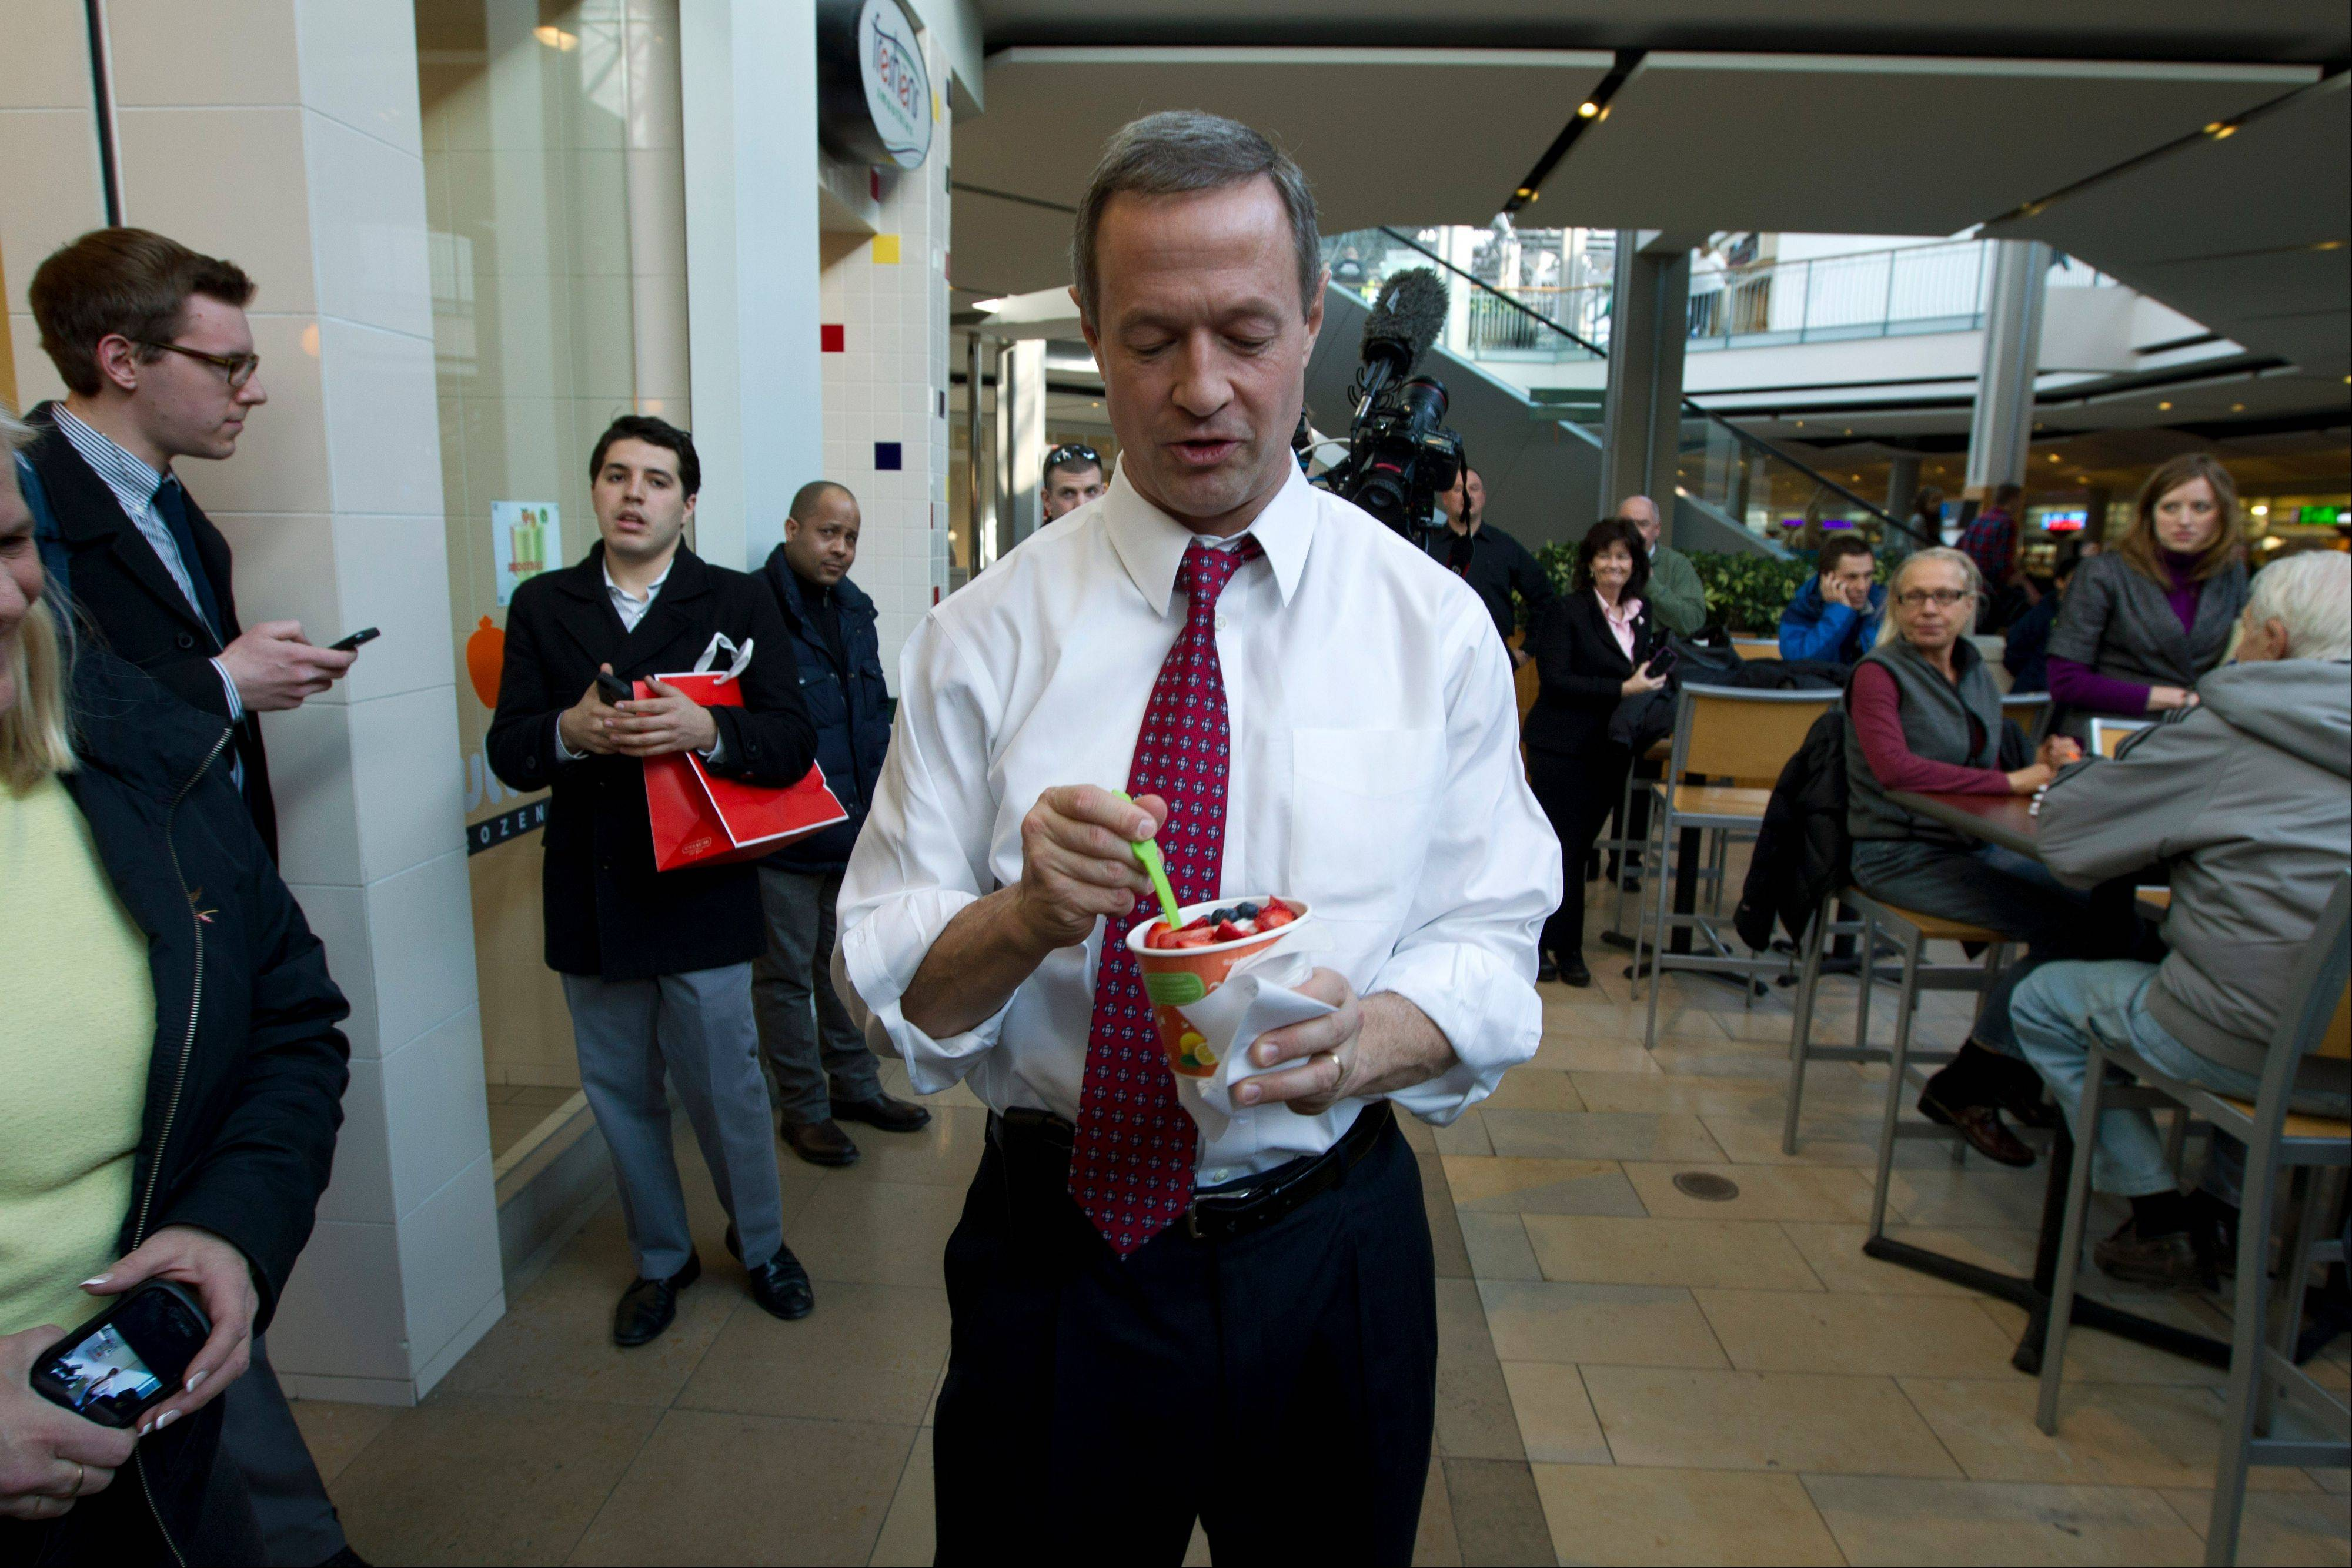 Maryland Gov. Martin O'Malley, eats frozen yogurt as he tour the Mall in Columbia, Md, after the mall was reopened to the public on Monday Jan. 27, 2014. Three people died Saturday in a shooting at a mall in suburban Baltimore, including the presumed gunman.